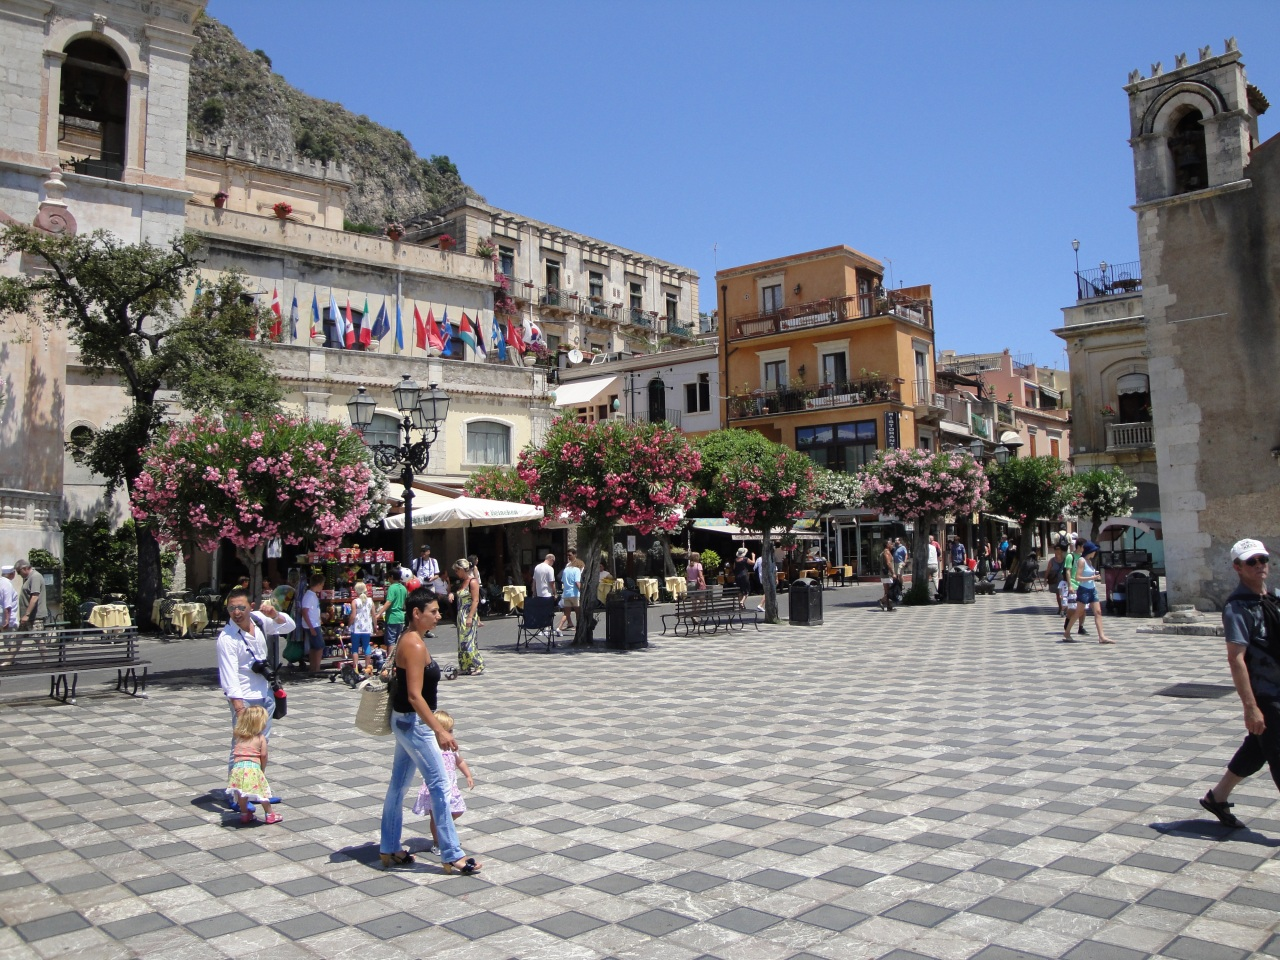 ONE DAY IN SICILY(ITALY)